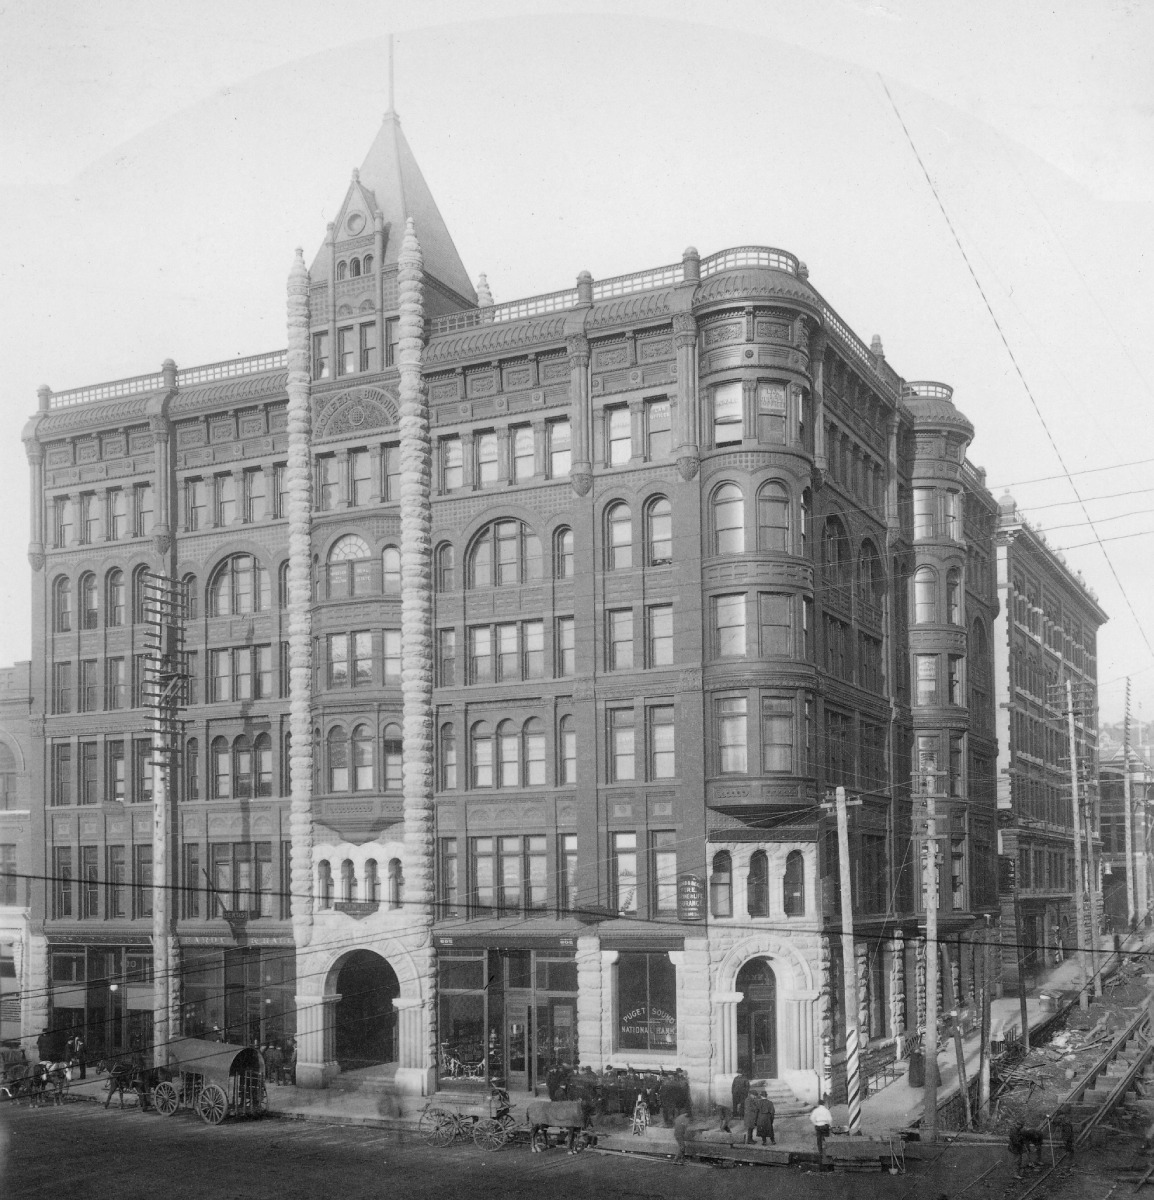 Pioneer_Building,_corner_of_1st_Ave_and_James_St,_Seattle,_Washington,_ca_1890_1.jpg